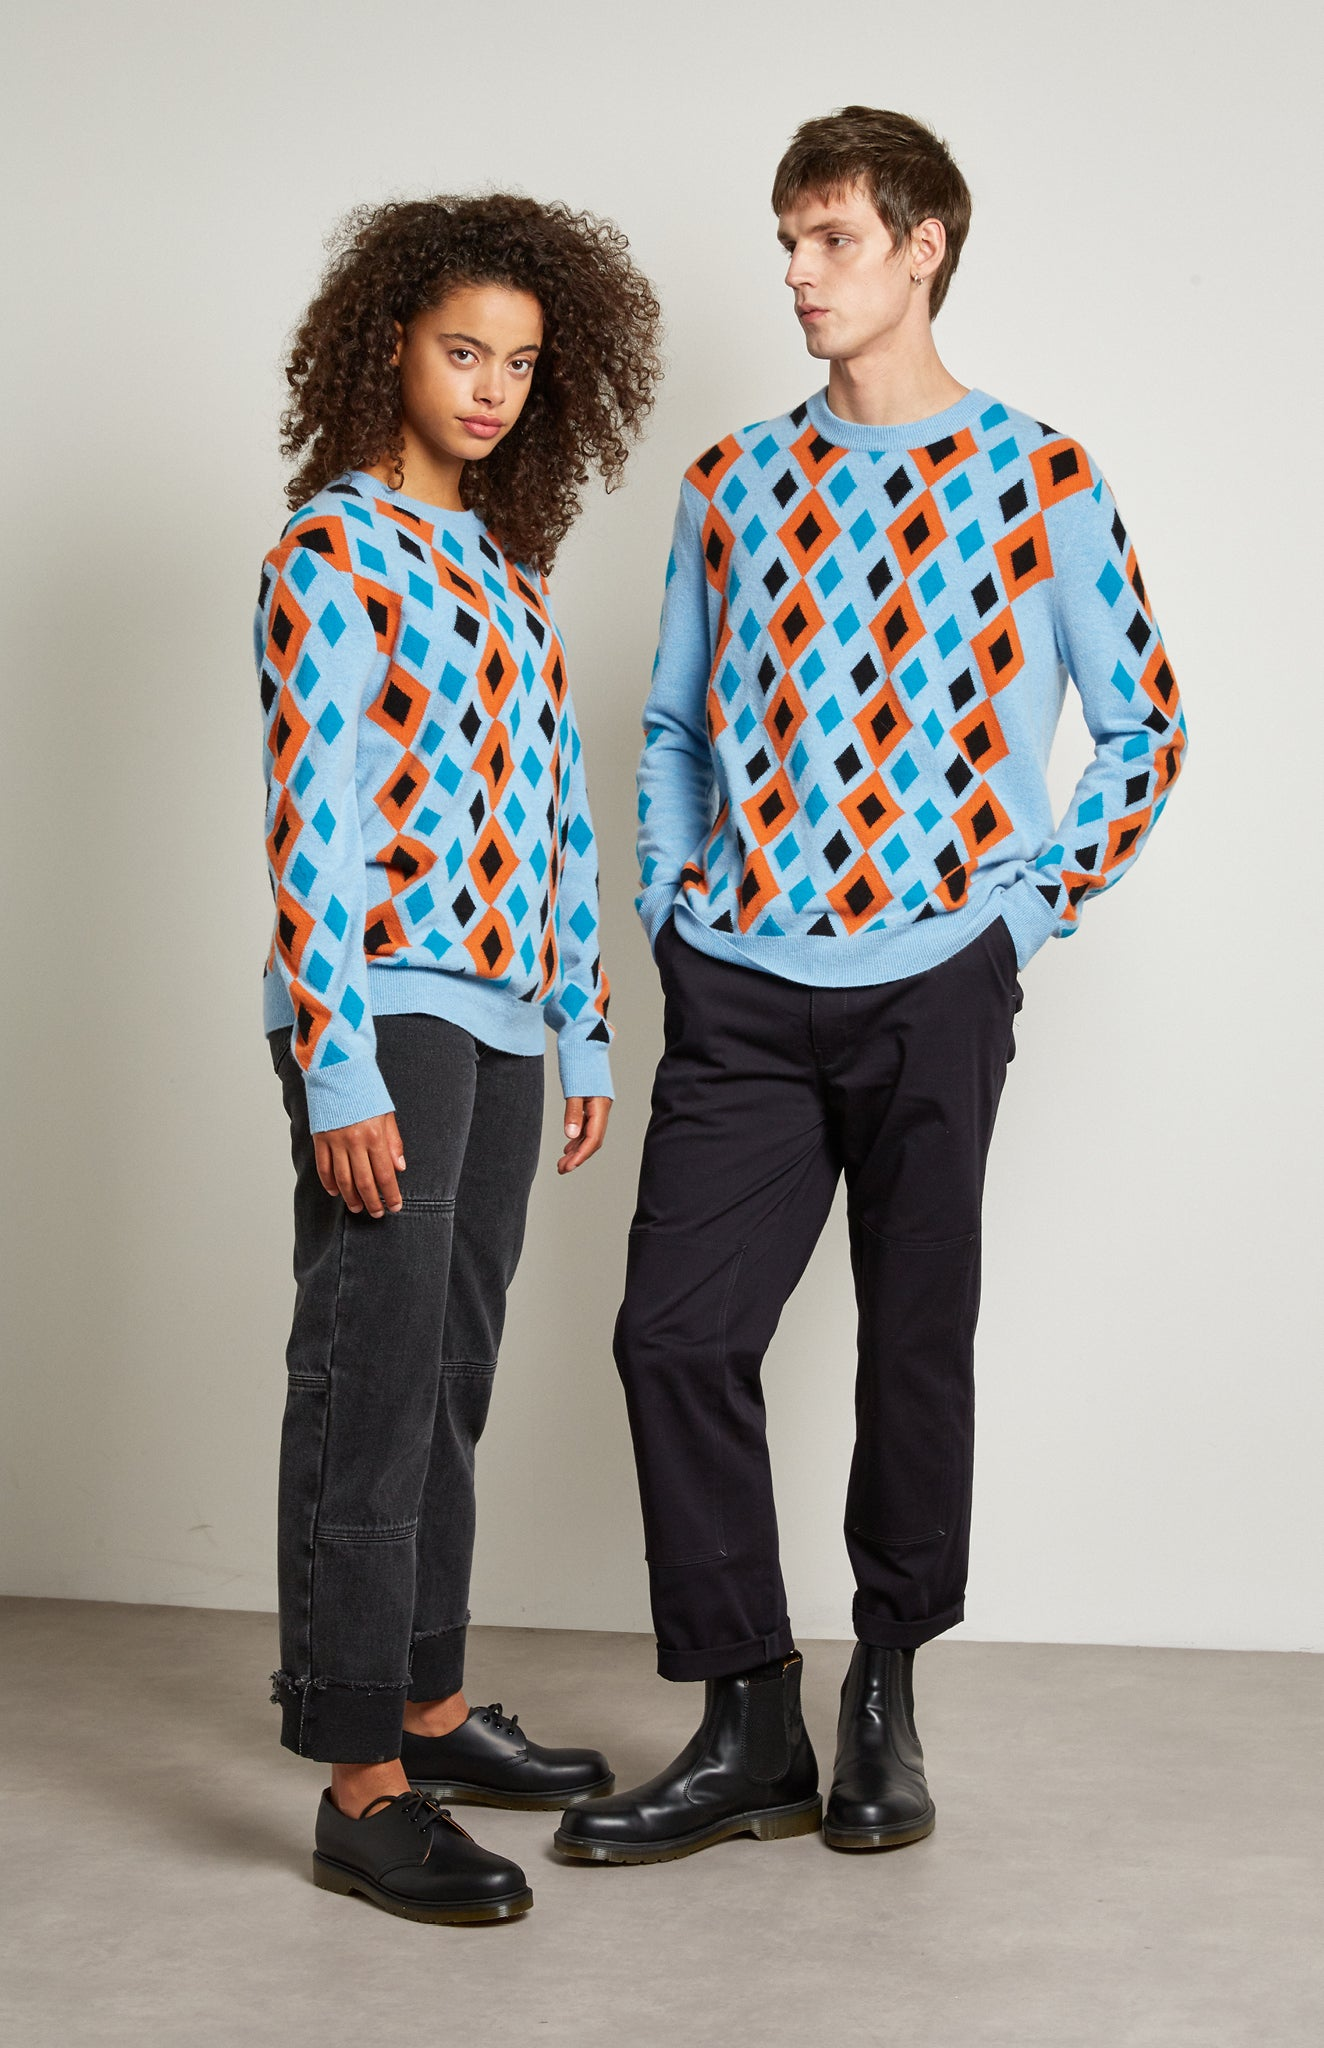 Pringle Reissued Unisex Multi Diamond Argyle Jumper In Light Blue on male and female model